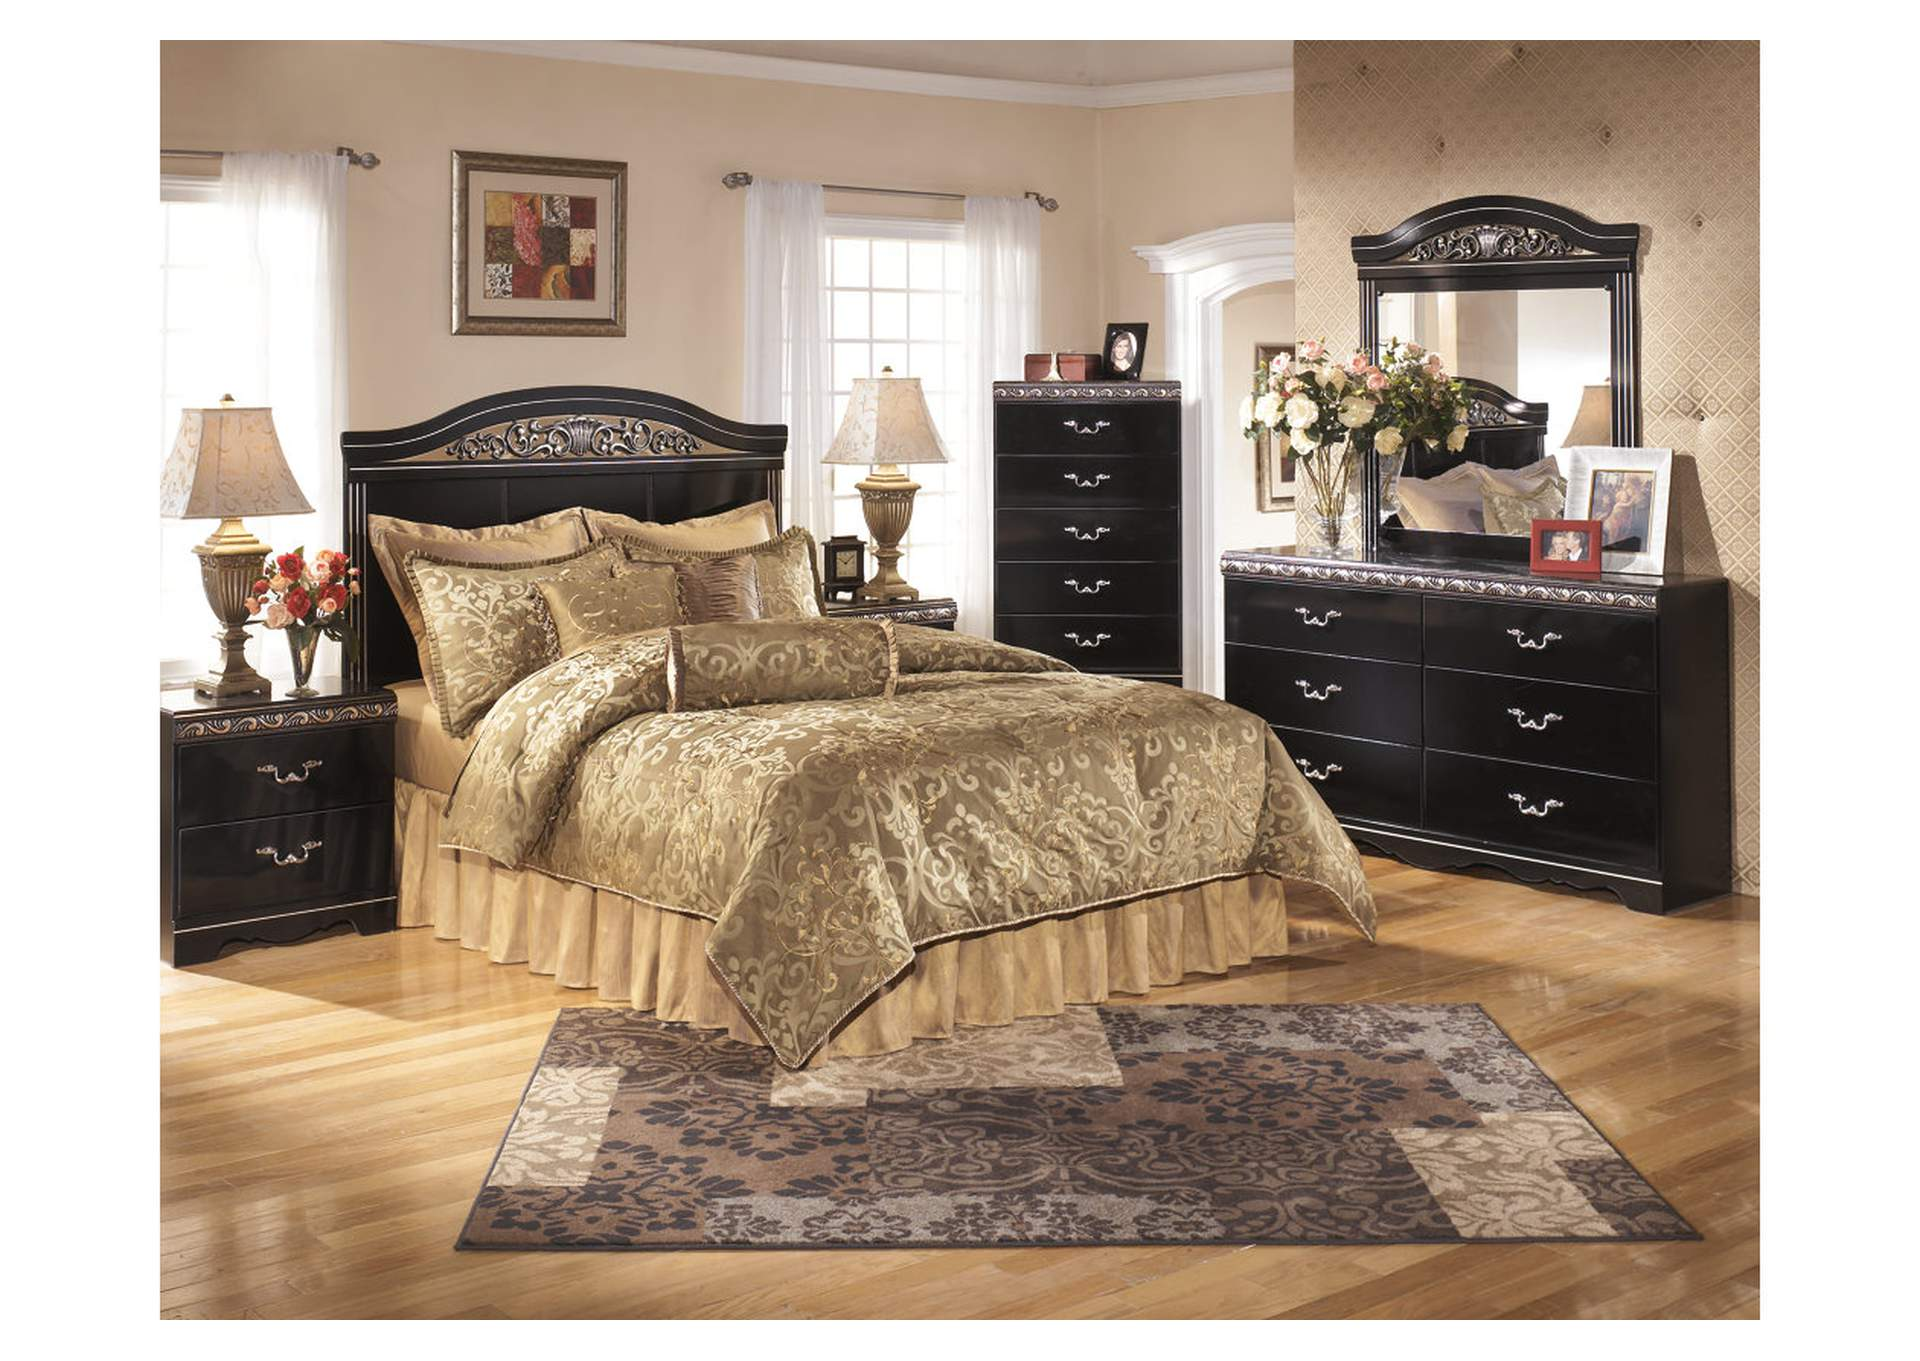 Constellations Queen/Full Panel Headboard w/Dresser & Mirror,Signature Design By Ashley